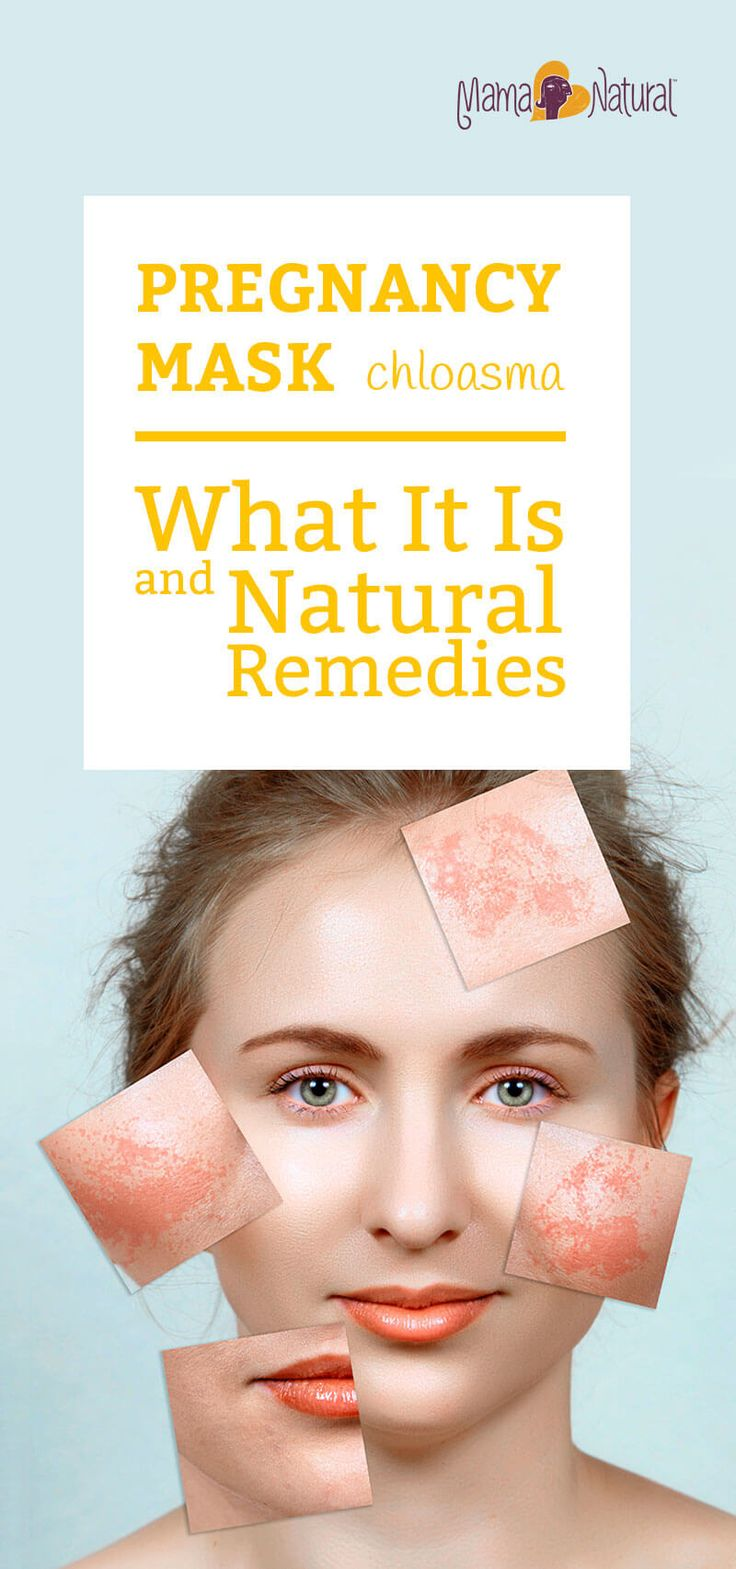 Find out what pregnancy mask is, who is affected by it, and how you can prevent and treat pregnancy mask (chloasma) naturally. http://www.mamanatural.com/pregnancy-mask/